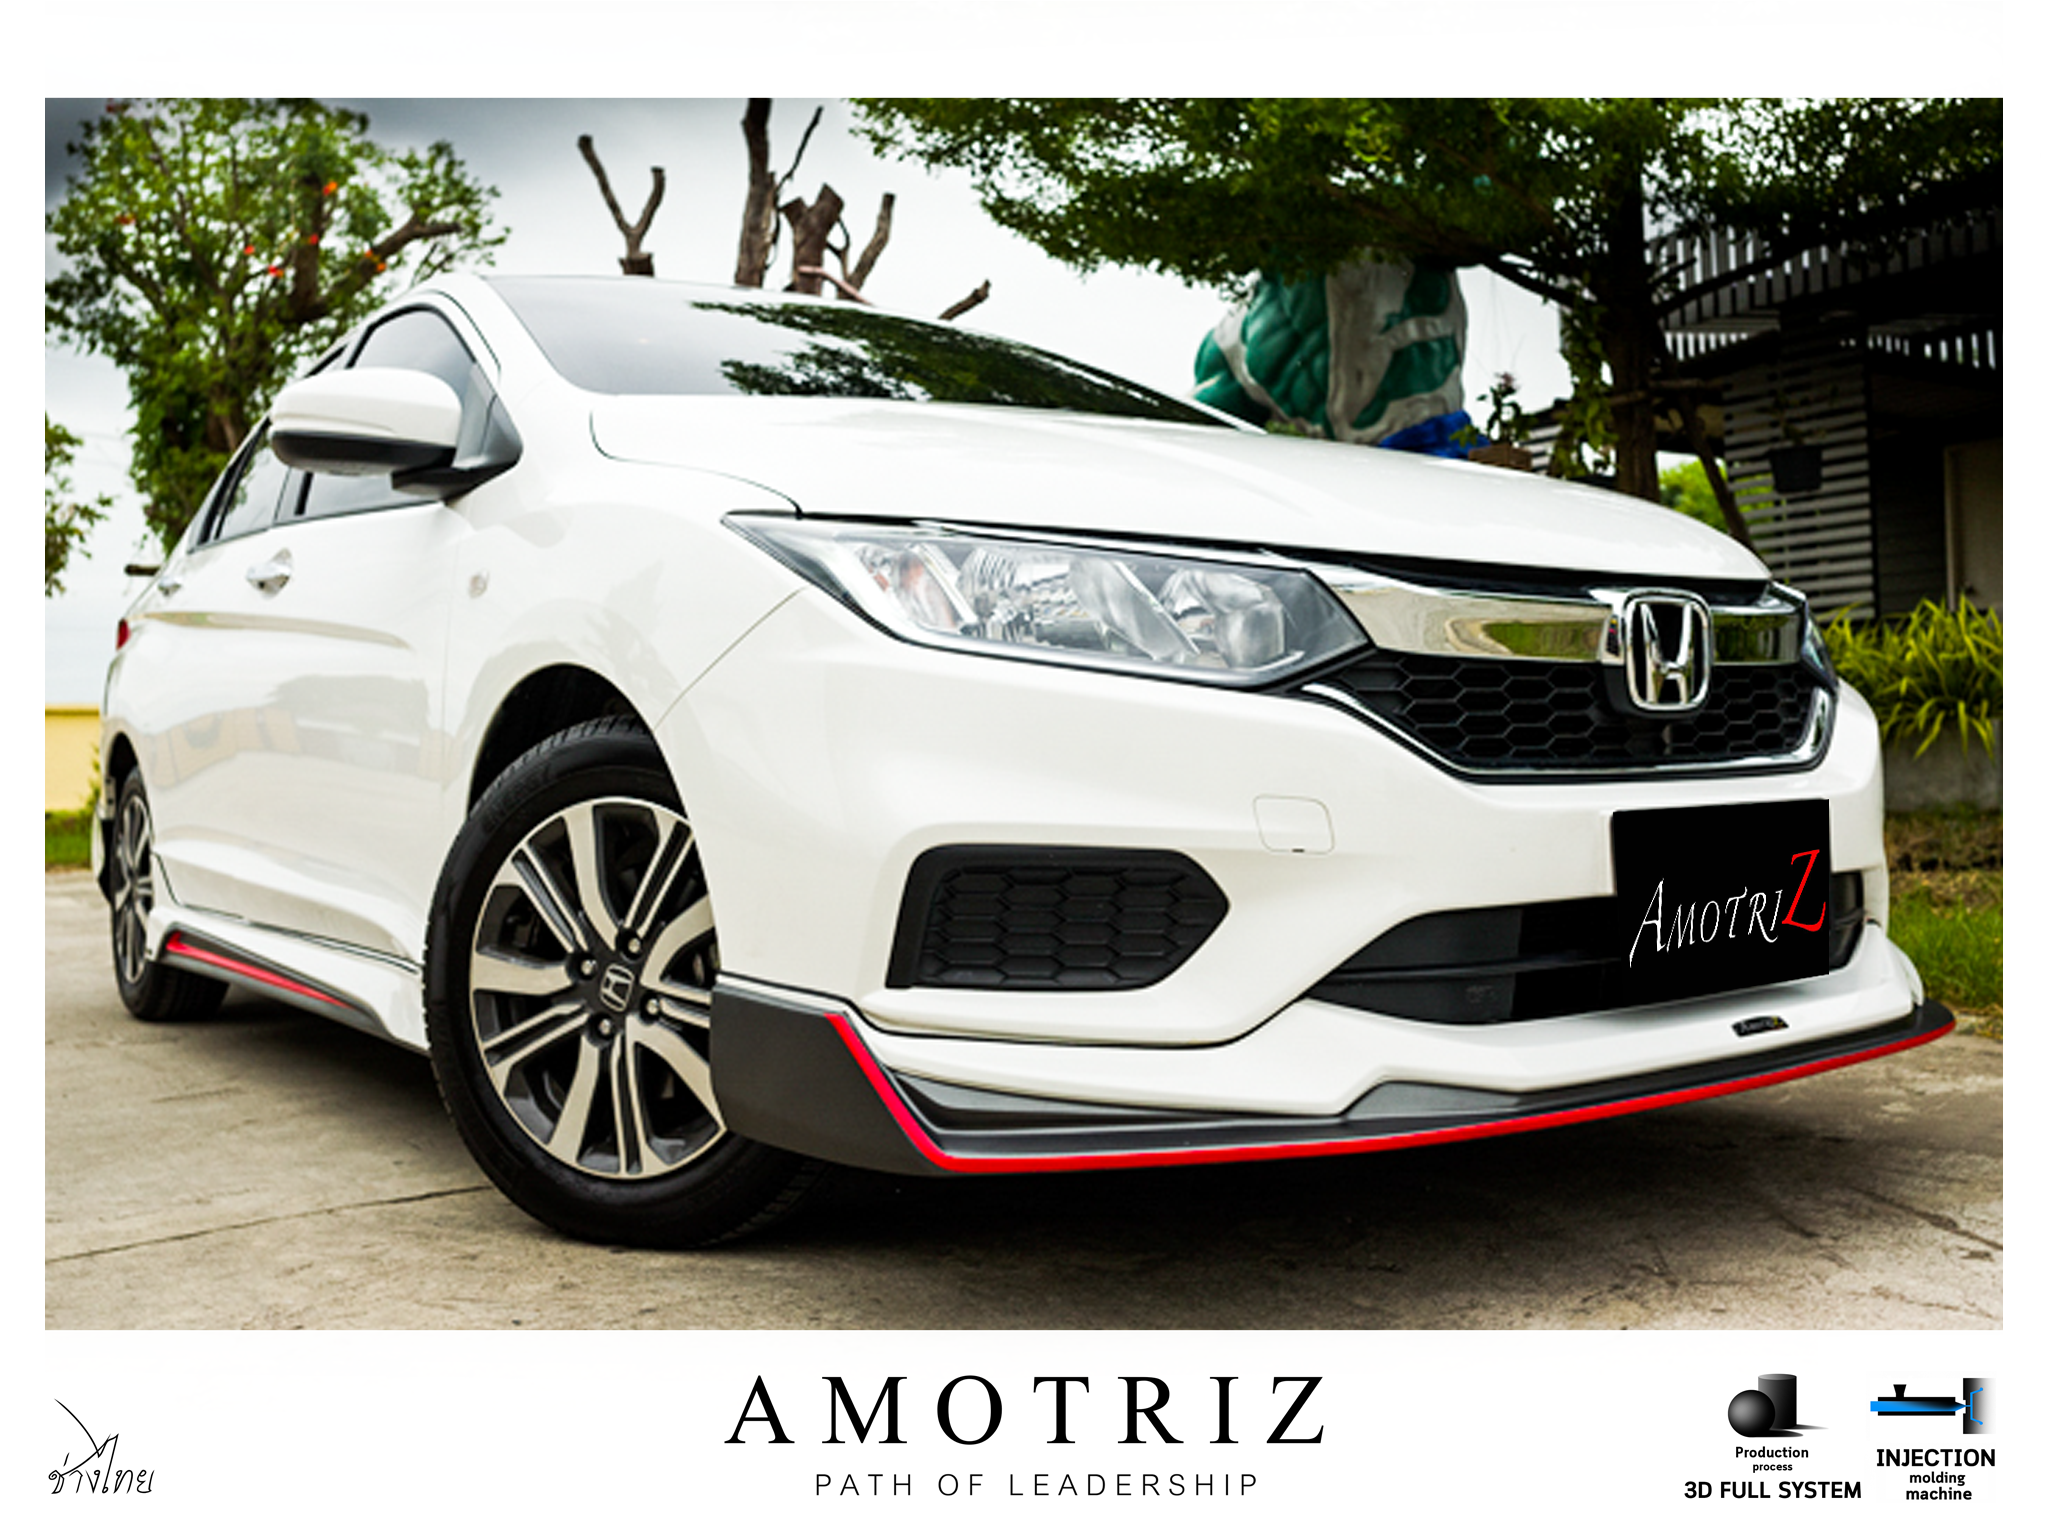 Honda City 2017 Body Kits By Amotriz ช ดแต ง Honda City 2020 Inspired By Lnwshop Com